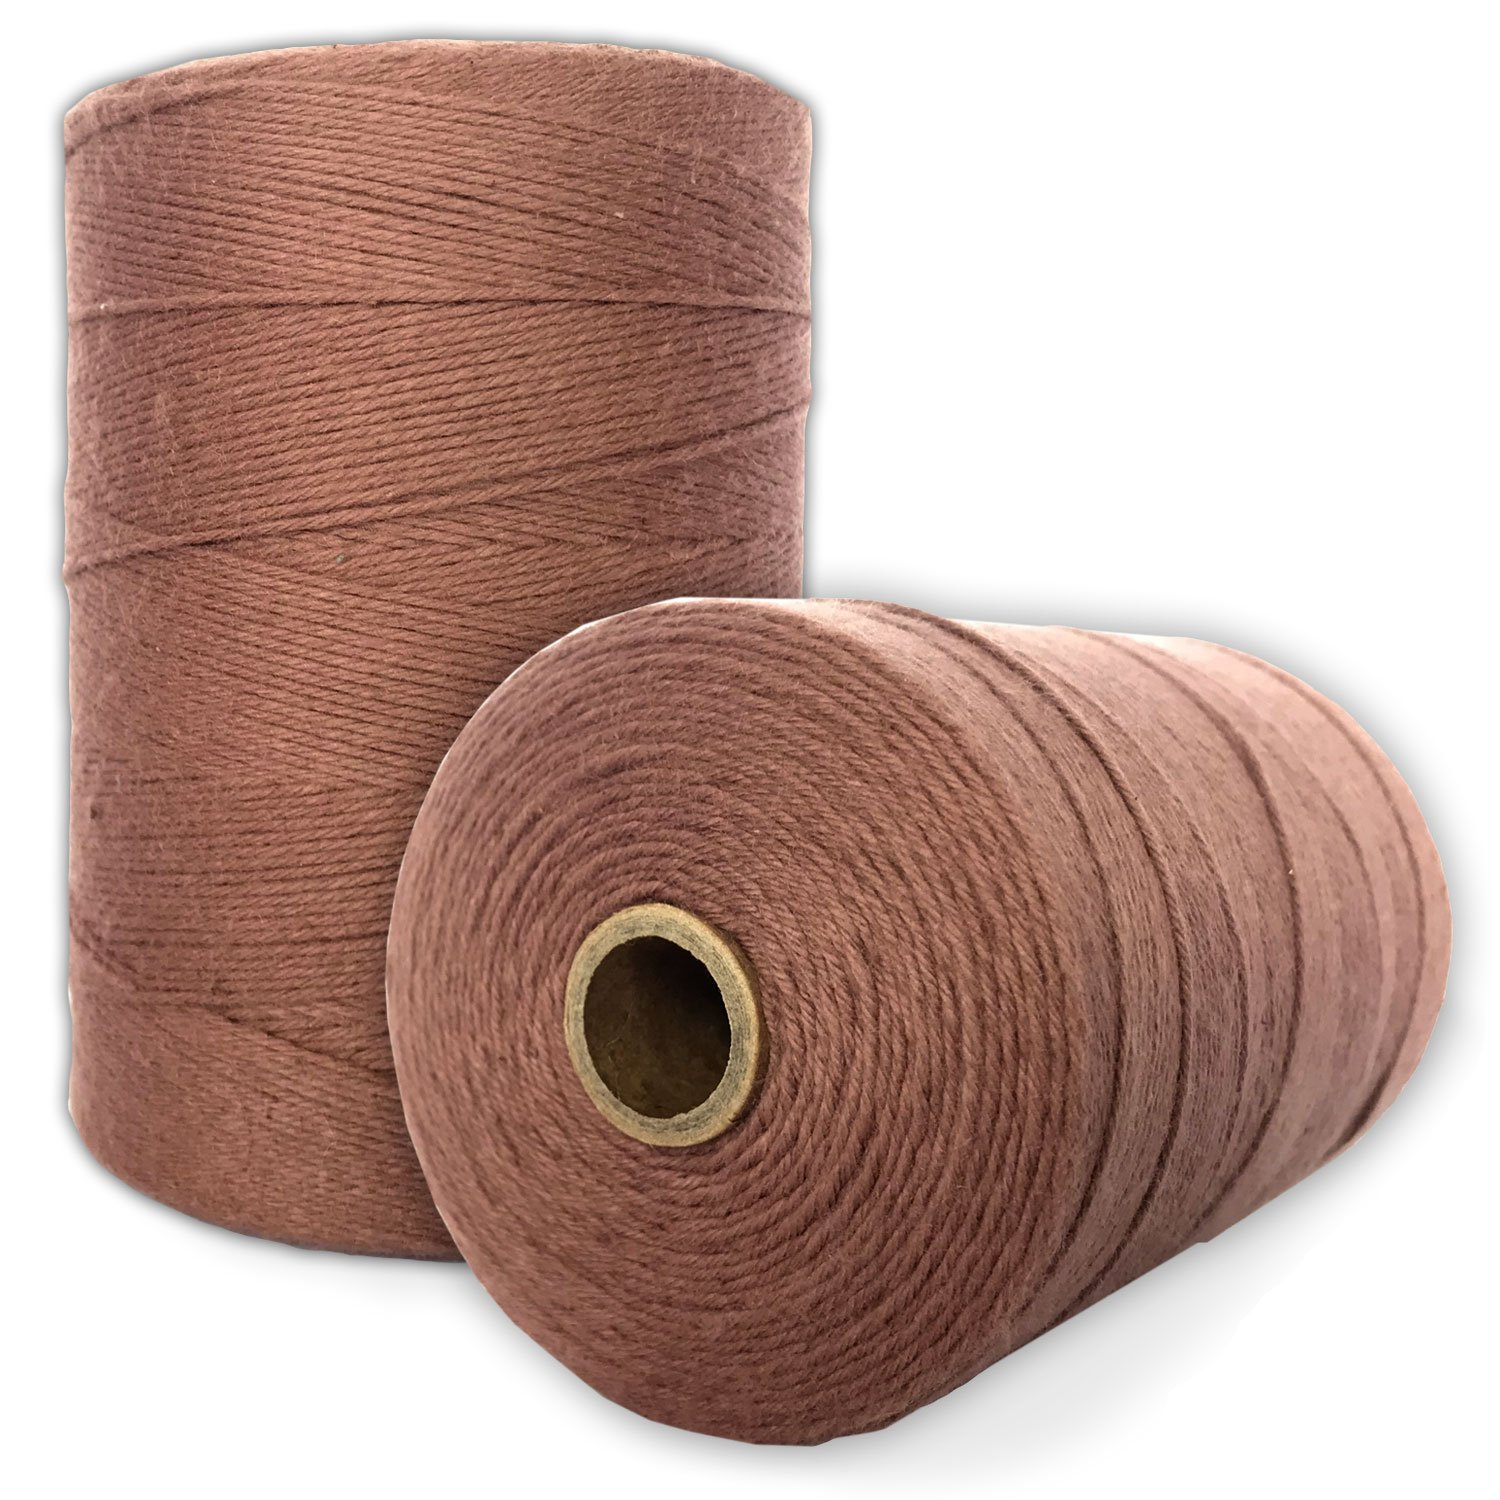 Durable Loom Warp Thread (Natural/off white), 8/4 Warp Yarn (800 YARDS), Perfect for weaving: carpet, tapestry, rug, blanket or pattern - Warping thread for ANY LOOM Paper Farm 4336926477